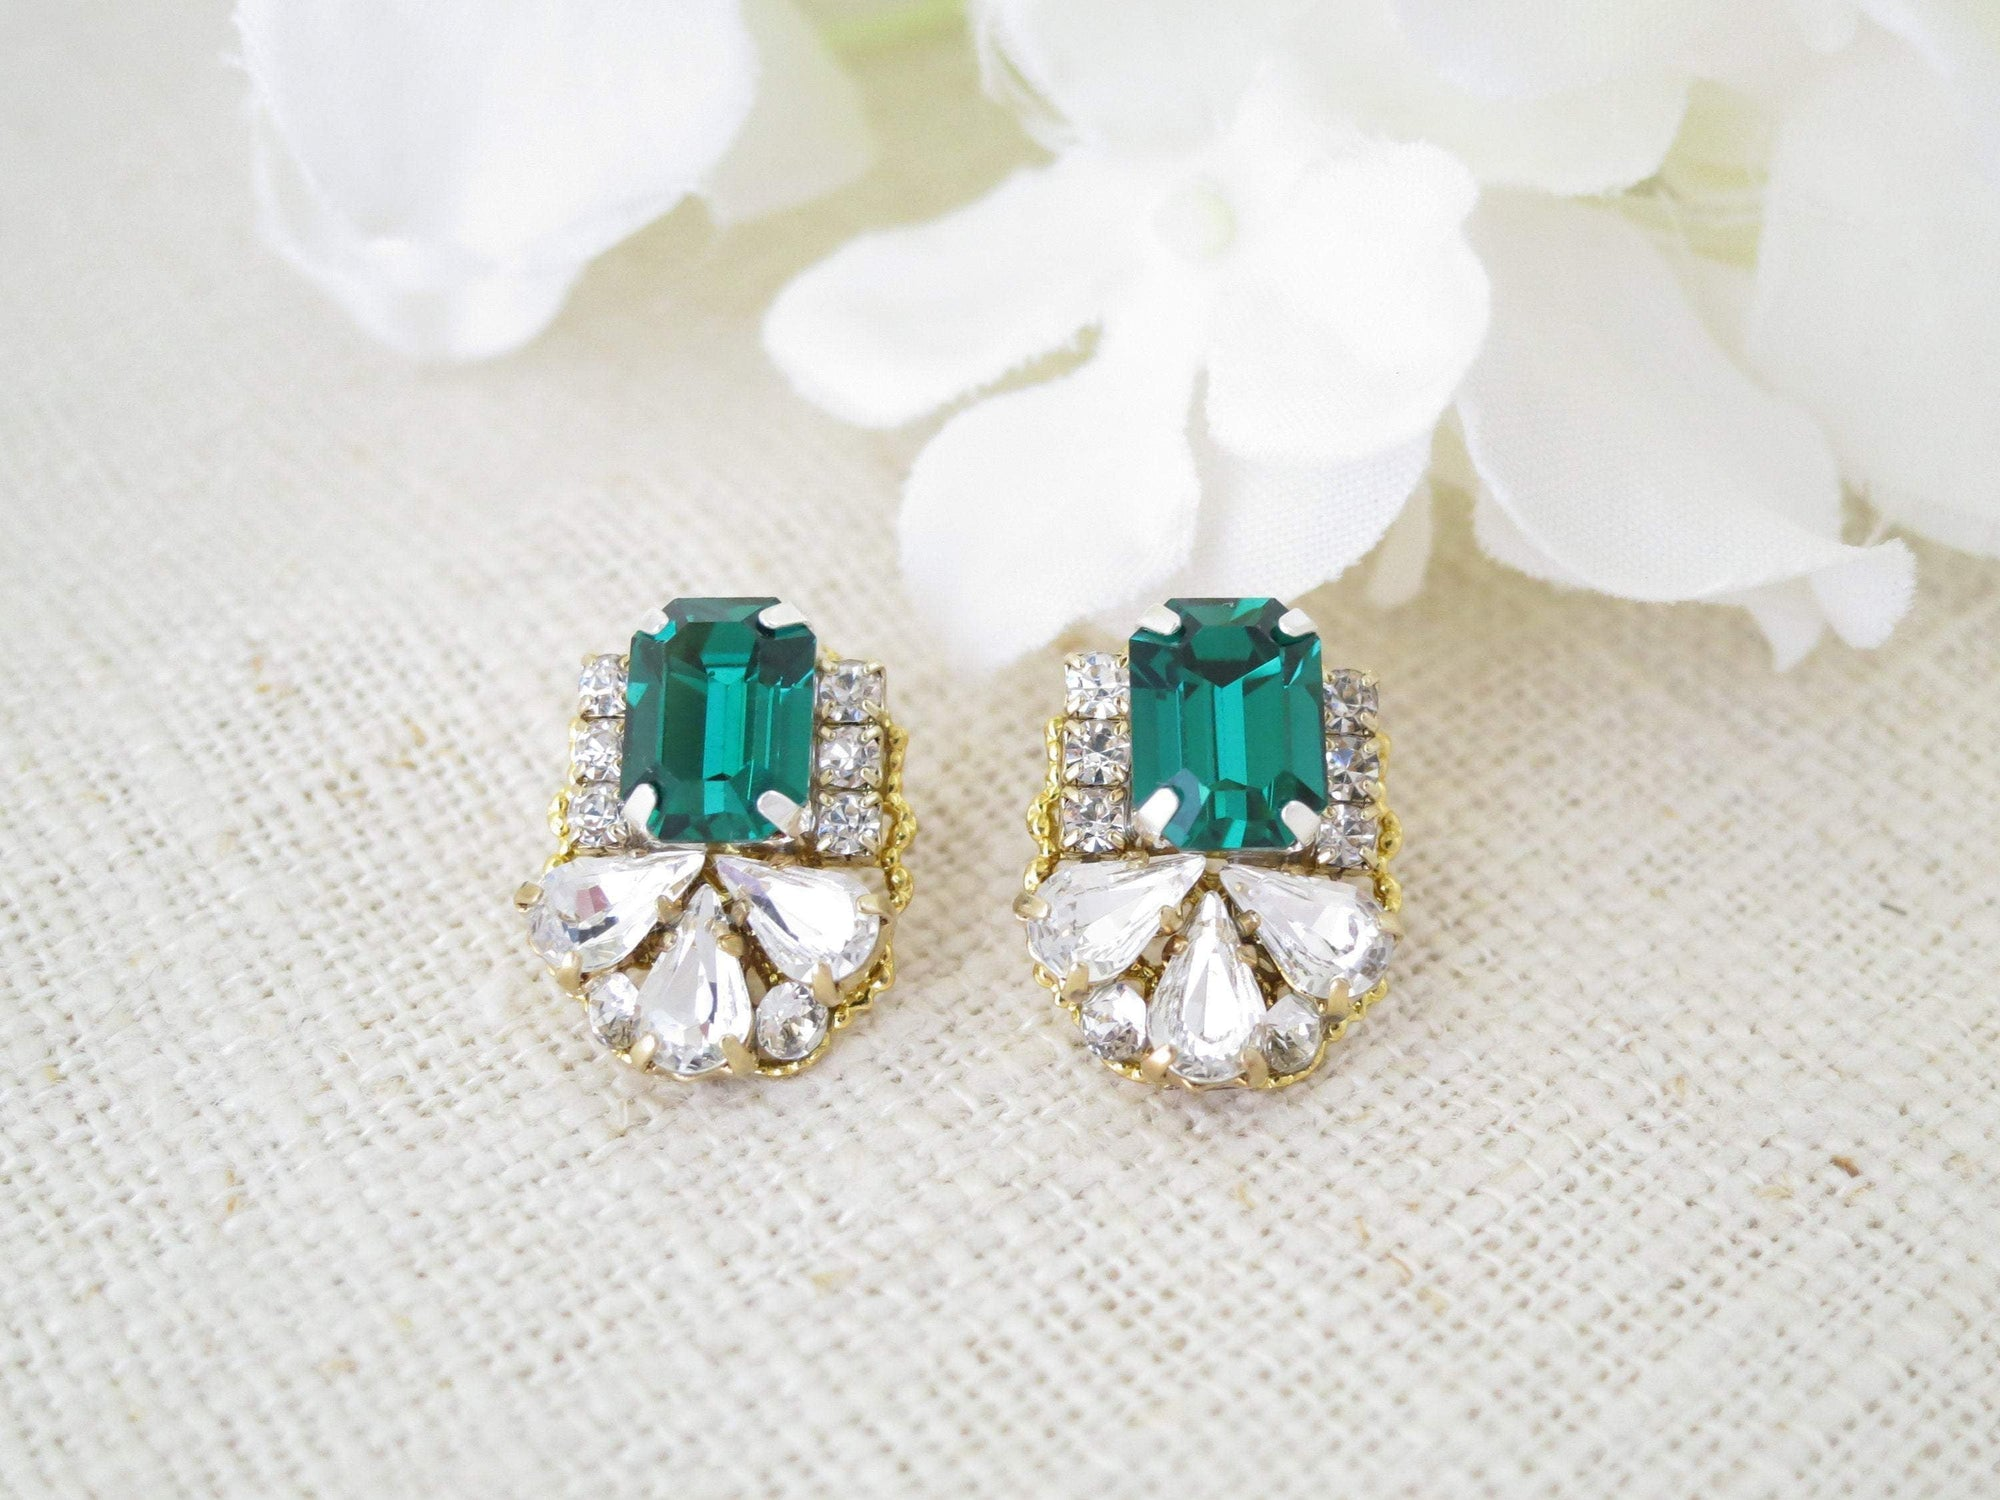 MAY:  Emerald Green Stud Earrings - BlingBaddaBoom - Minimalist, Vintage, Modern Wedding and Bridal Jewelry